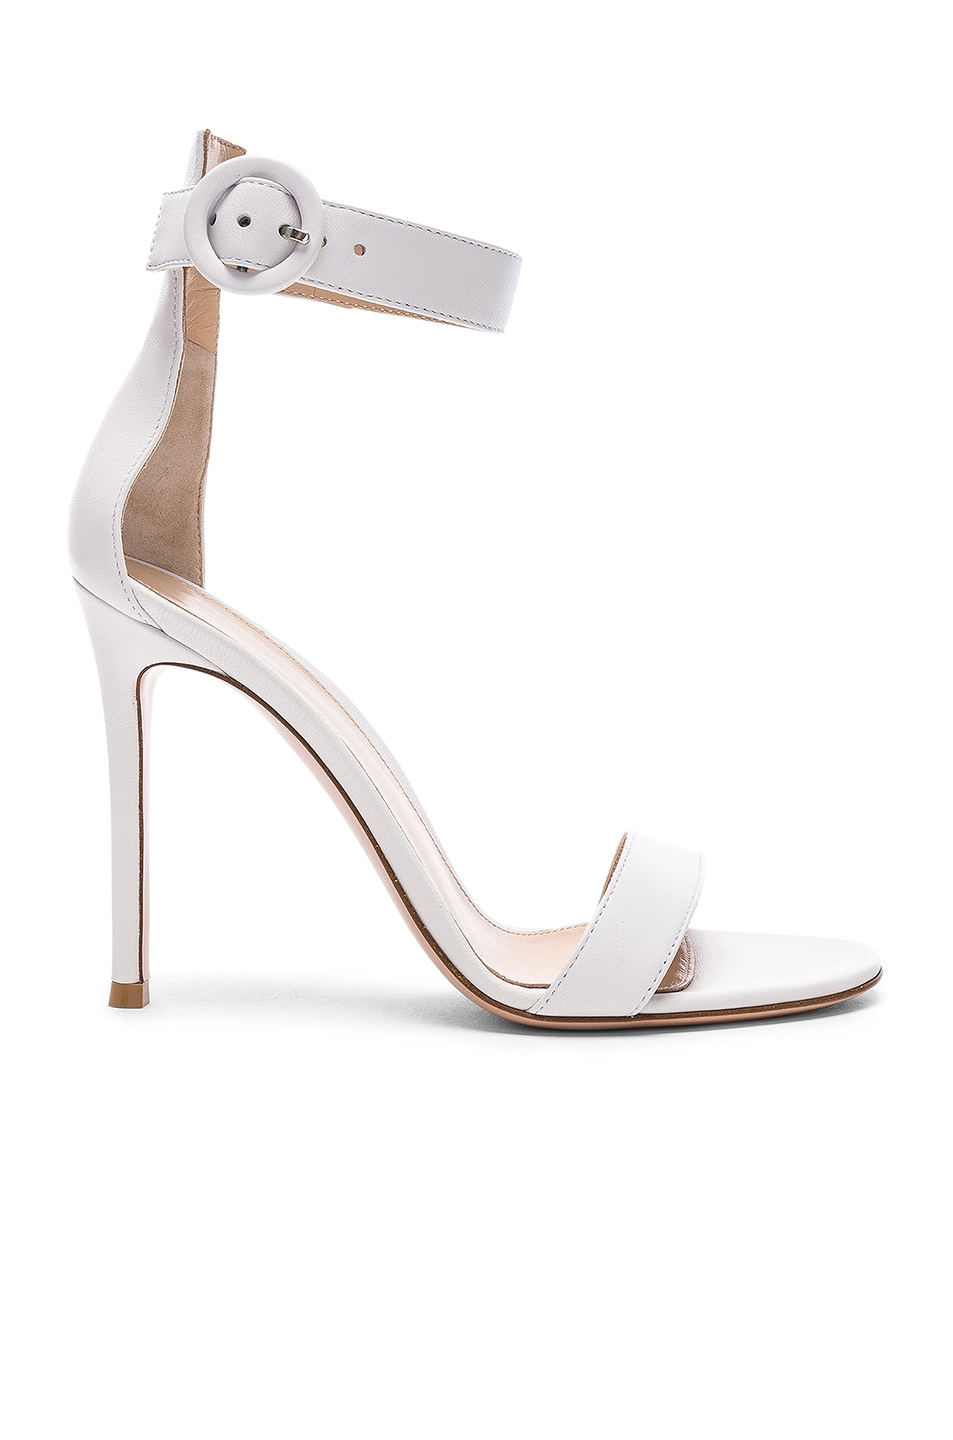 Image 1 of Gianvito Rossi Leather Portofino Heels in White